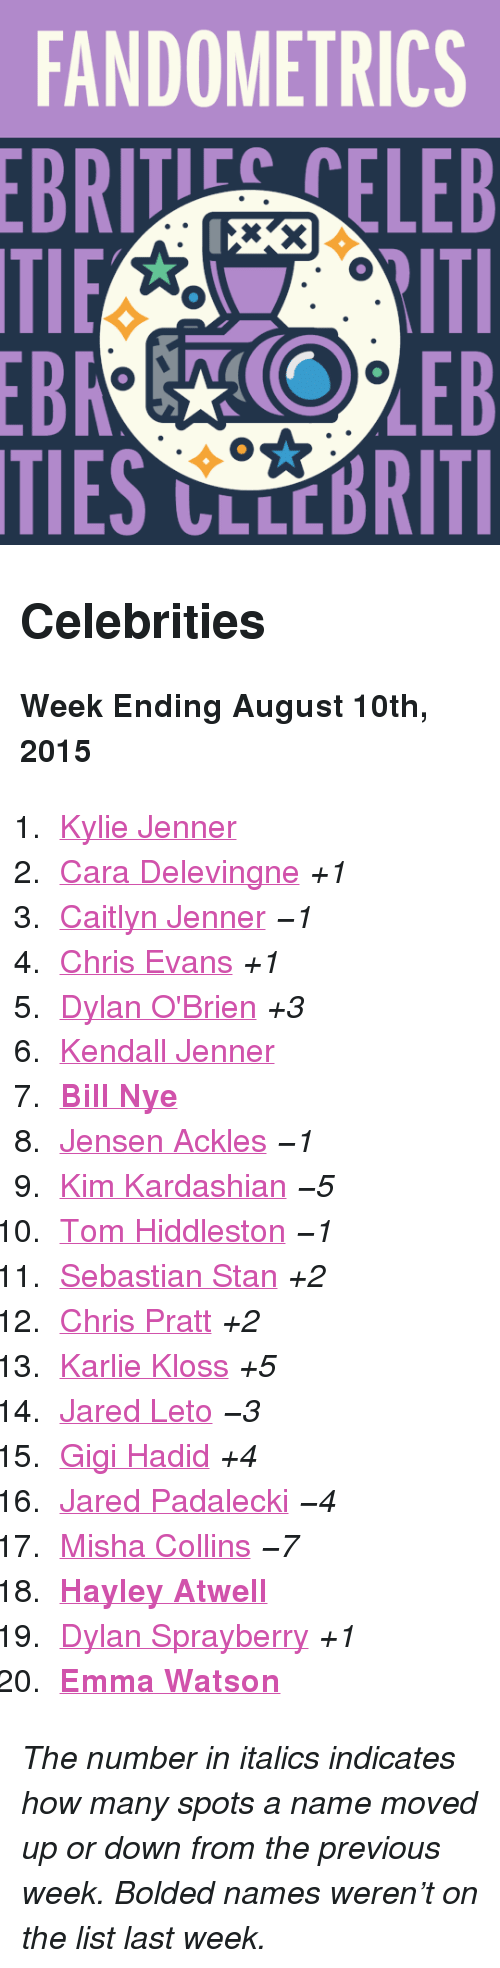 """Dylan O'Brien: FANDOMETRICS  BRTELEB  TIES CLLCBRITI <h2>Celebrities</h2><p><b>Week Ending August 10th, 2015</b></p><ol><li><a href=""""http://www.tumblr.com/search/kylie%20jenner"""">Kylie Jenner</a></li>  <li><a href=""""http://www.tumblr.com/search/cara%20delevingne"""">Cara Delevingne</a><i>+1</i></li>  <li><a href=""""http://www.tumblr.com/search/caitlyn%20jenner"""">Caitlyn Jenner</a><i>−1</i></li>  <li><a href=""""http://www.tumblr.com/search/chris%20evans"""">Chris Evans</a><i>+1</i></li>  <li><a href=""""http://www.tumblr.com/search/dylan%20o'brien"""">Dylan O'Brien</a><i>+3</i></li>  <li><a href=""""http://www.tumblr.com/search/kendall%20jenner"""">Kendall Jenner</a></li>  <li><a href=""""http://www.tumblr.com/search/bill%20nye""""><b>Bill Nye</b></a></li>  <li><a href=""""http://www.tumblr.com/search/jensen%20ackles"""">Jensen Ackles</a><i>−1</i></li>  <li><a href=""""http://www.tumblr.com/search/kim%20kardashian"""">Kim Kardashian</a><i>−5</i></li>  <li><a href=""""http://www.tumblr.com/search/tom%20hiddleston"""">Tom Hiddleston</a><i>−1</i></li>  <li><a href=""""http://www.tumblr.com/search/sebastian%20stan"""">Sebastian Stan</a><i>+2</i></li>  <li><a href=""""http://www.tumblr.com/search/chris%20pratt"""">Chris Pratt</a><i>+2</i></li>  <li><a href=""""http://www.tumblr.com/search/karlie%20kloss"""">Karlie Kloss</a><i>+5</i></li>  <li><a href=""""http://www.tumblr.com/search/jared%20leto"""">Jared Leto</a><i>−3</i></li>  <li><a href=""""http://www.tumblr.com/search/gigi%20hadid"""">Gigi Hadid</a><i>+4</i></li>  <li><a href=""""http://www.tumblr.com/search/jared%20padalecki"""">Jared Padalecki</a><i>−4</i></li>  <li><a href=""""http://www.tumblr.com/search/misha%20collins"""">Misha Collins</a><i>−7</i></li>  <li><a href=""""http://www.tumblr.com/search/hayley%20atwell""""><b>Hayley Atwell</b></a></li>  <li><a href=""""http://www.tumblr.com/search/dylan%20sprayberry"""">Dylan Sprayberry</a><i>+1</i></li>  <li><a href=""""http://www.tumblr.com/search/emma%20watson""""><b>Emma Watson</b></a></li></ol><p><i>The number in italics indicates how many spots a name moved up or dow"""